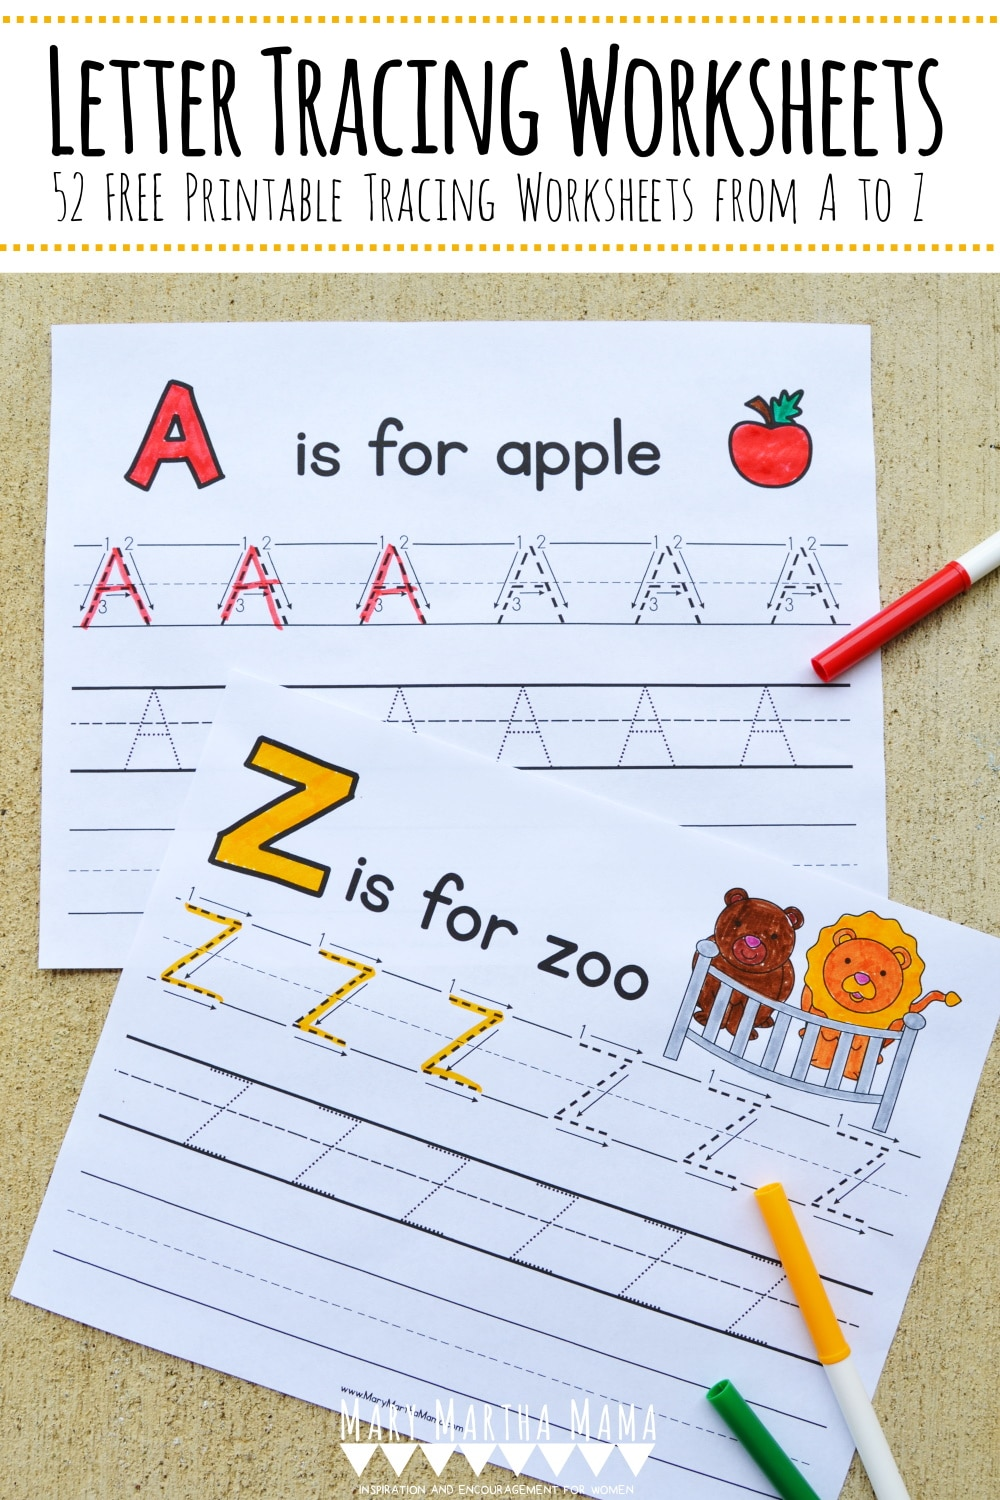 hight resolution of FREE Printable Letter Tracing Packet   Free Homeschool Deals ©